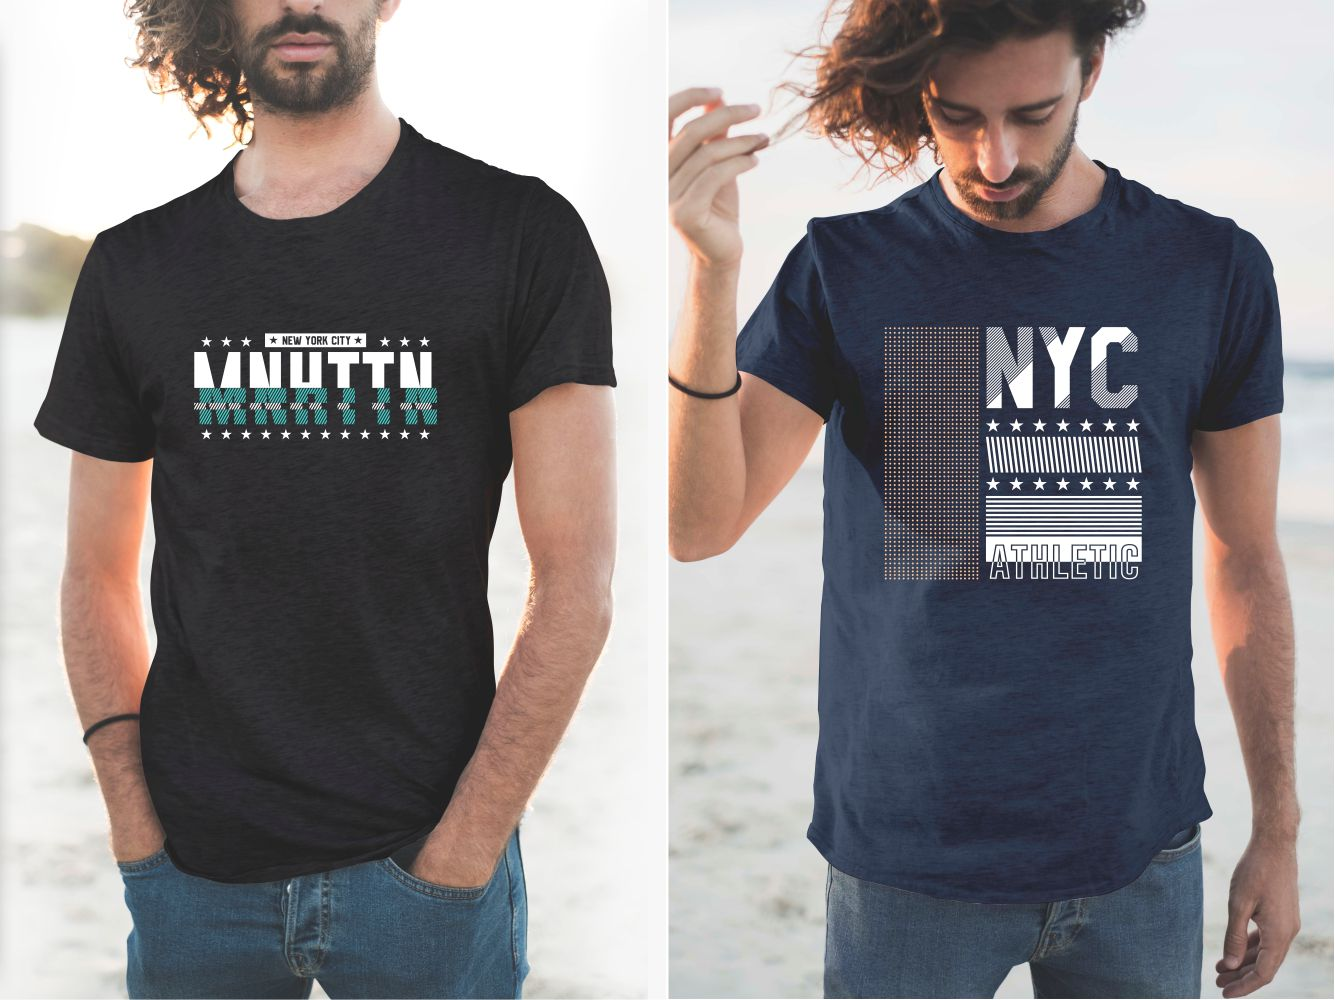 Black and blue T-shirts with green and white New York lettering.